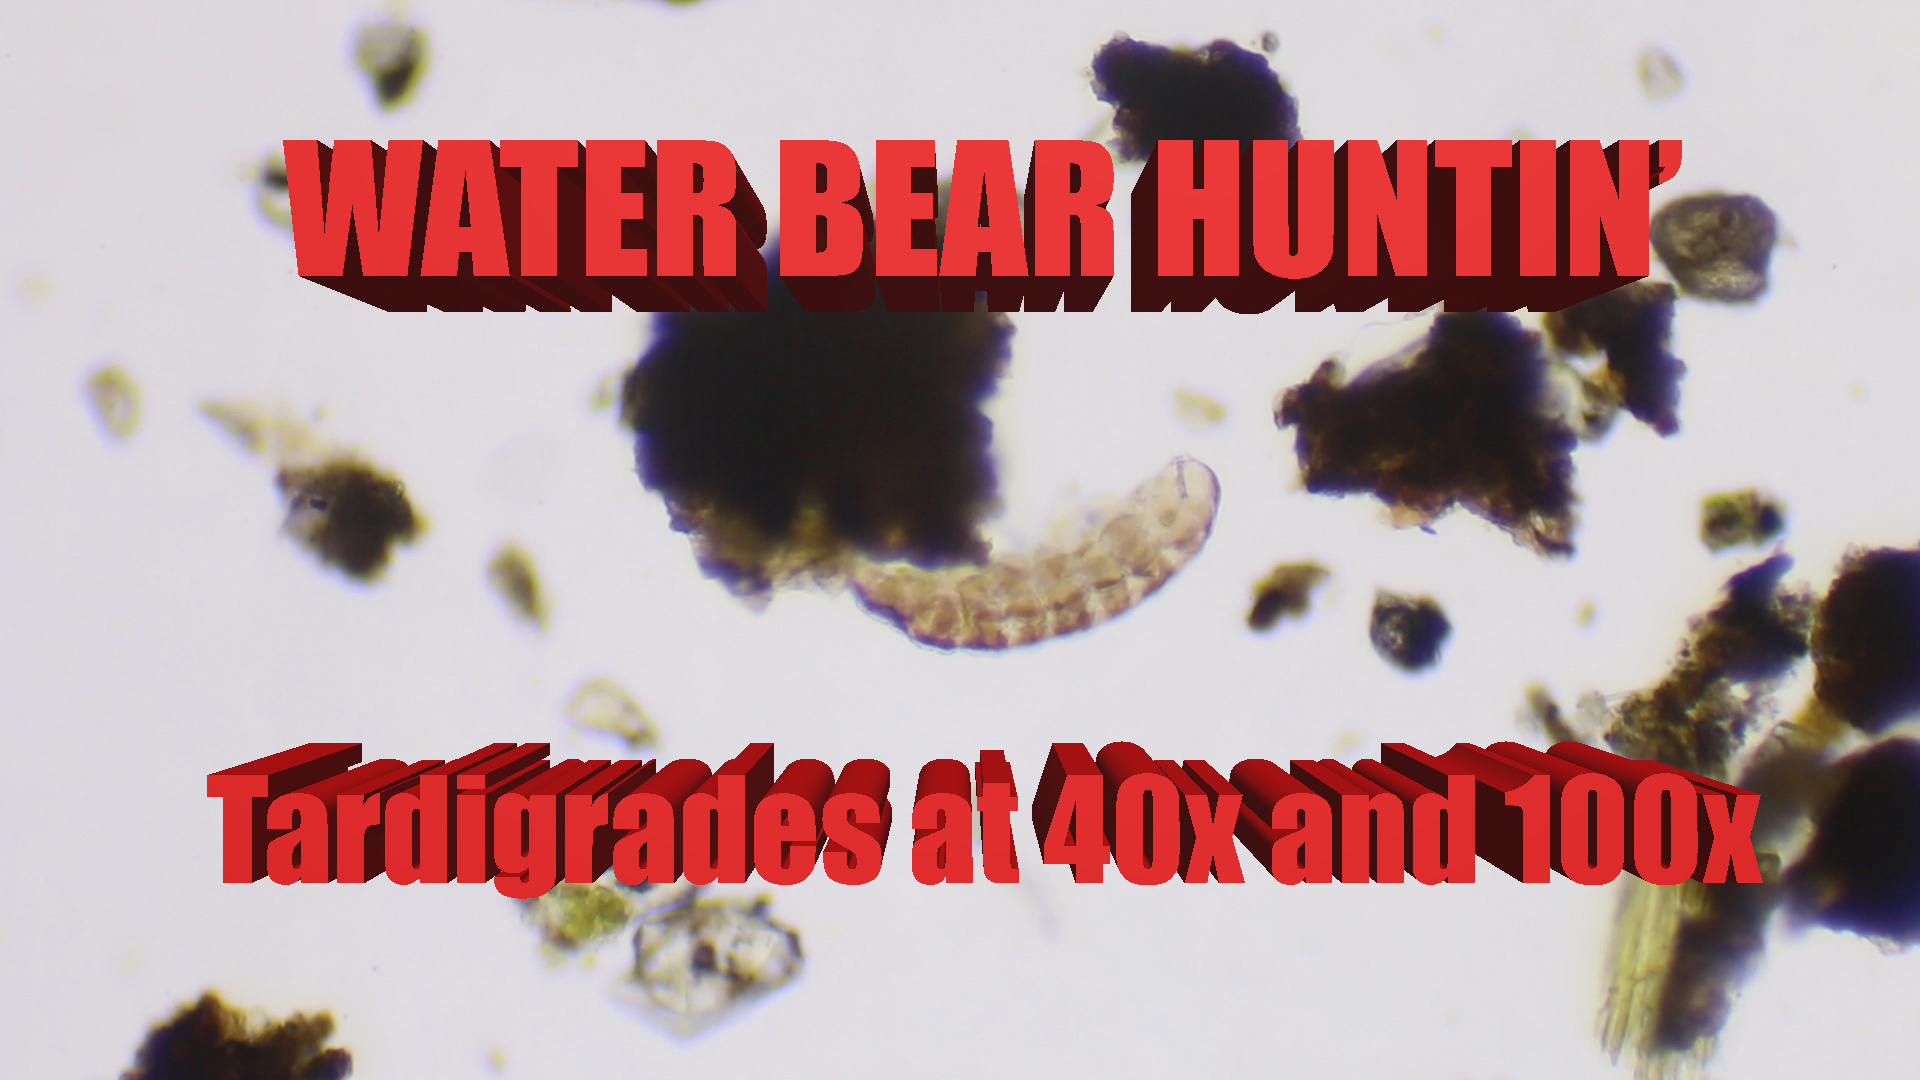 SCIENCE with WATER BEARS! Finding Tardigrades